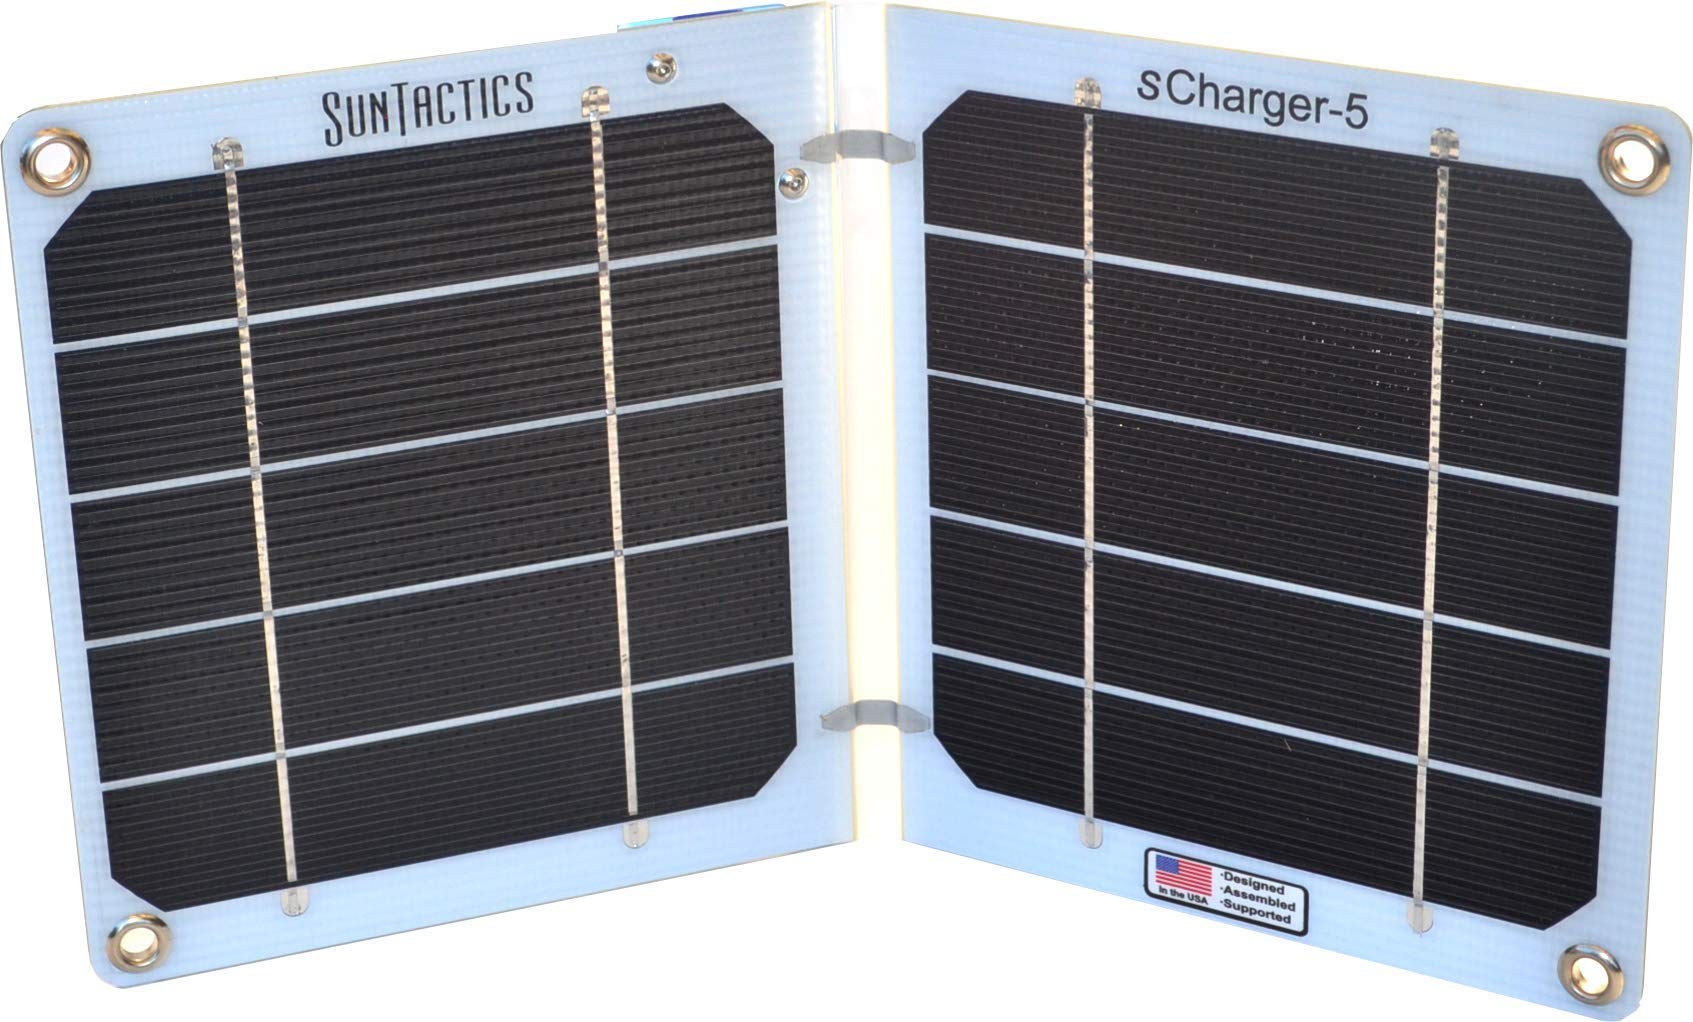 Suntactics S5 Ultralight Solar Charger, Quick Charge Phones, Power Banks and Many Other USB Devices Using Only The Sun! Assembled in The USA by Suntactics